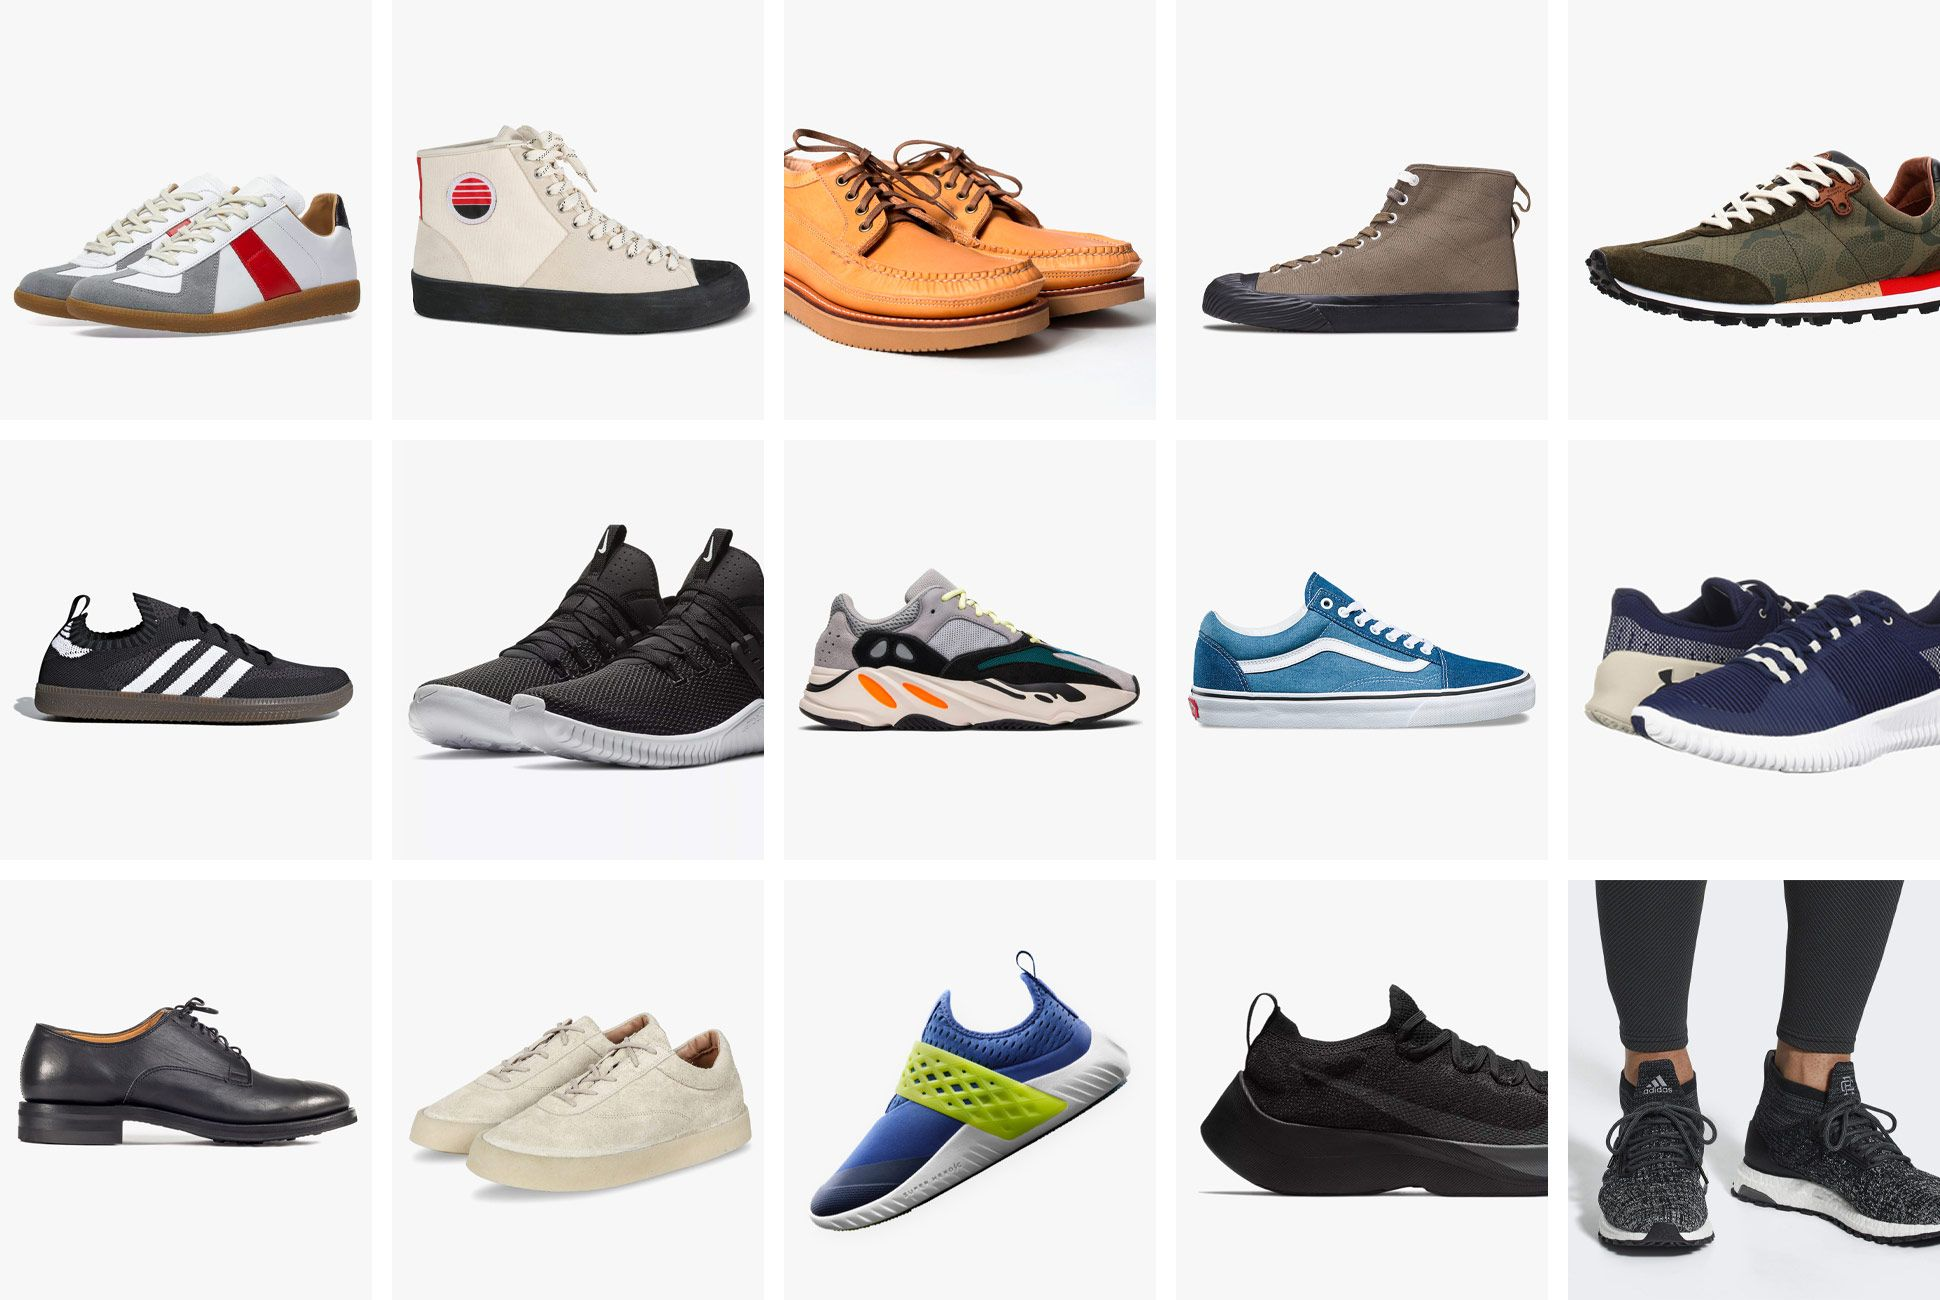 The Top Sneakers and Shoes of 2018 • Gear Patrol